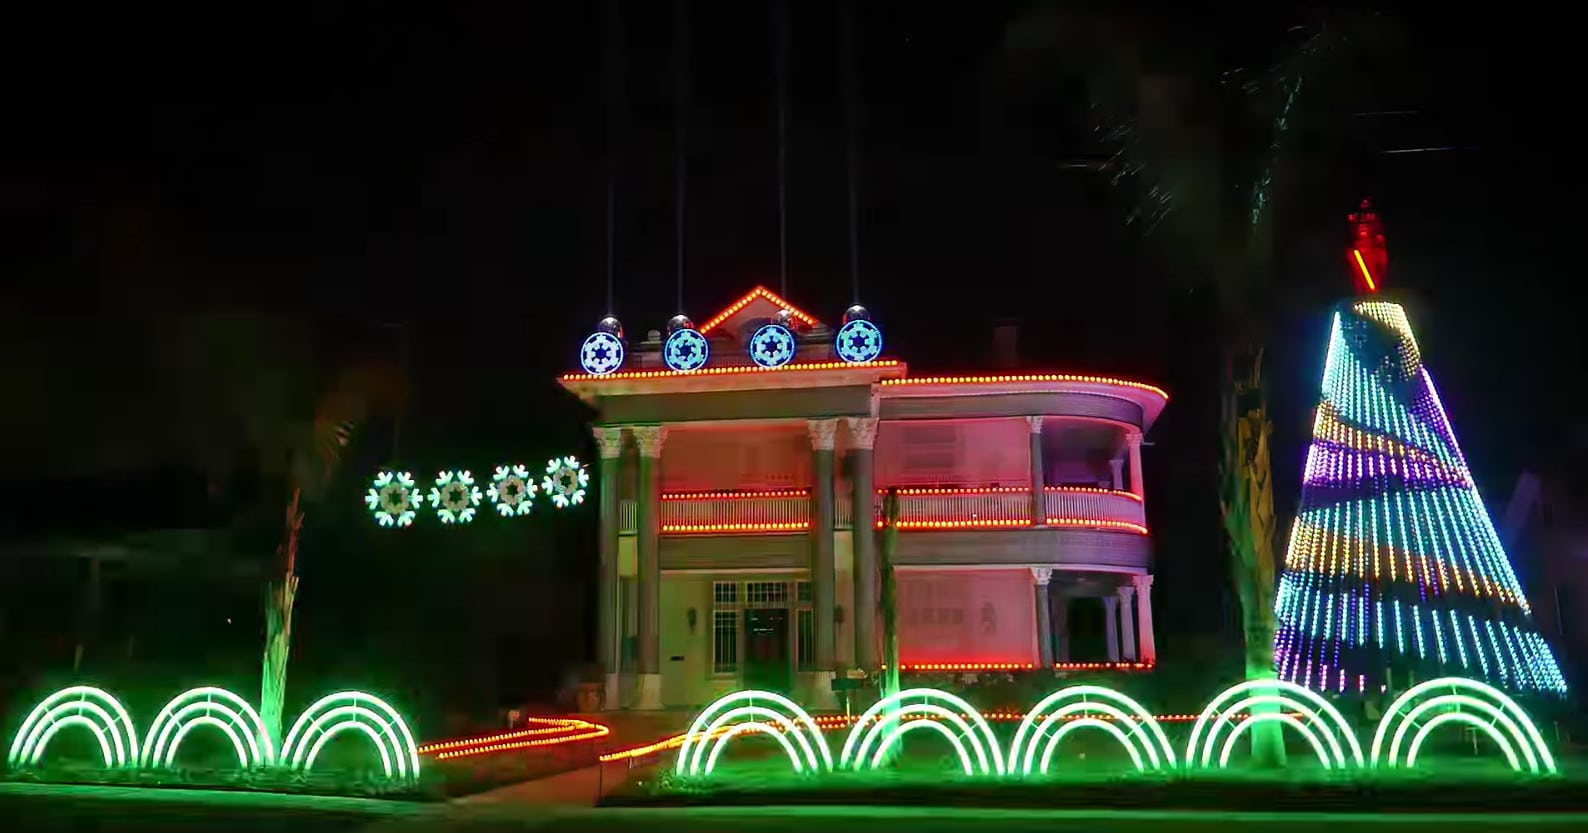 Top 5 Star Wars Christmas Light Displays On YouTube